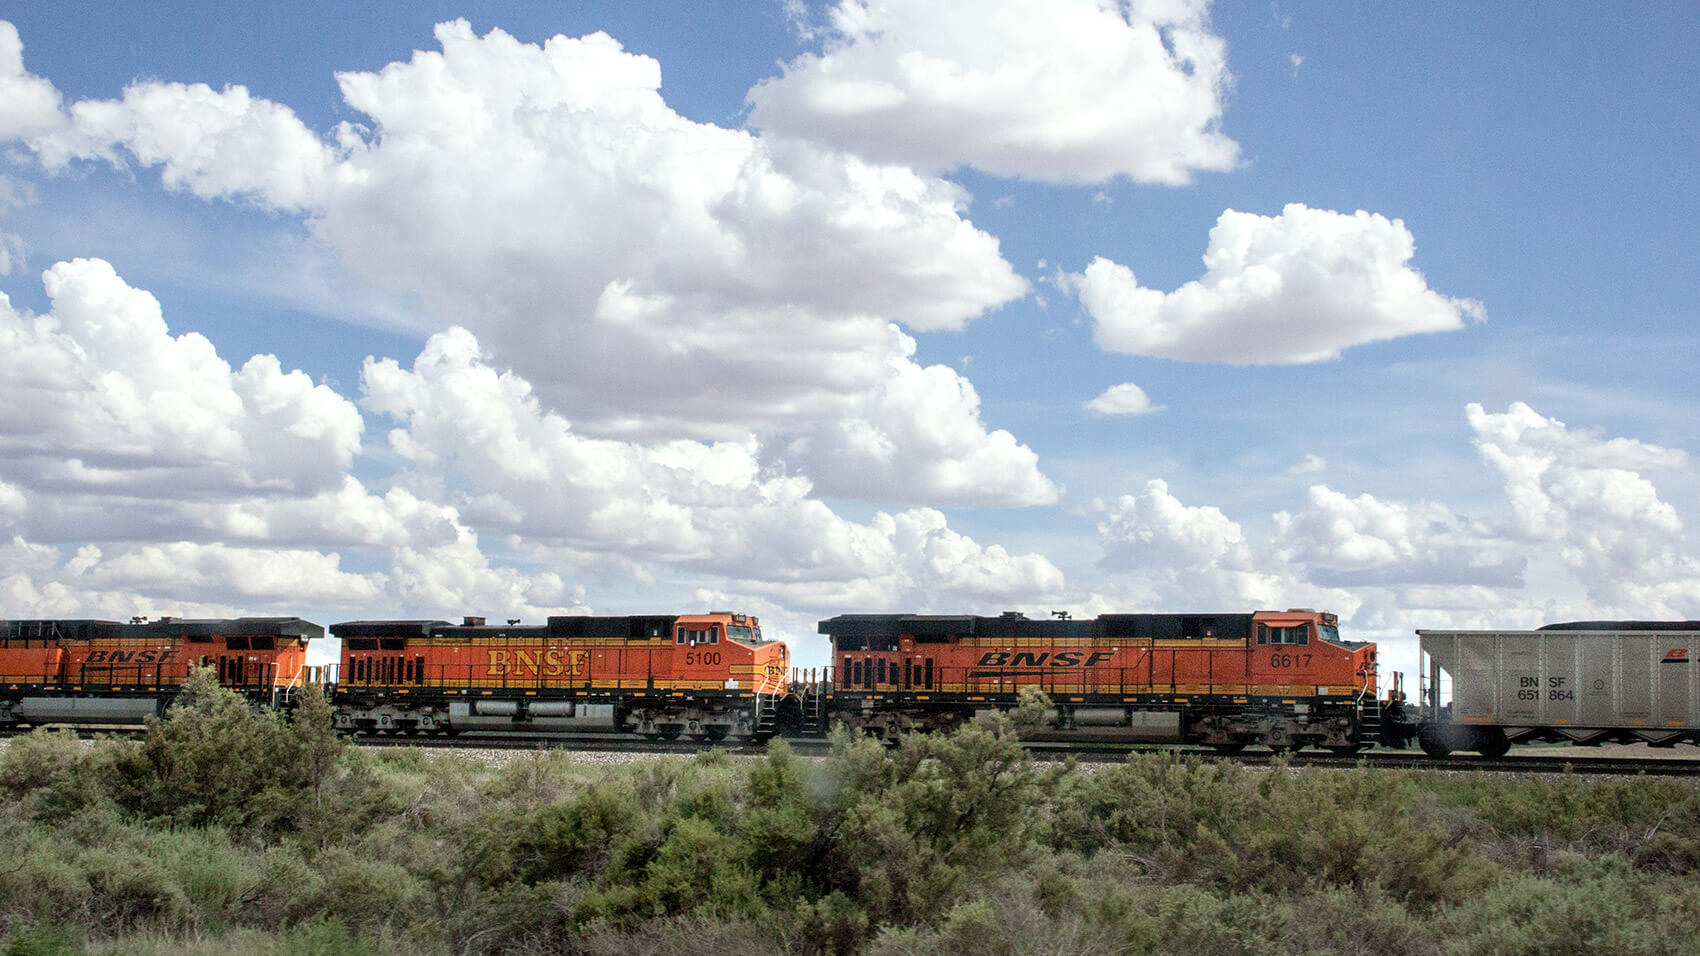 Train in Arizona